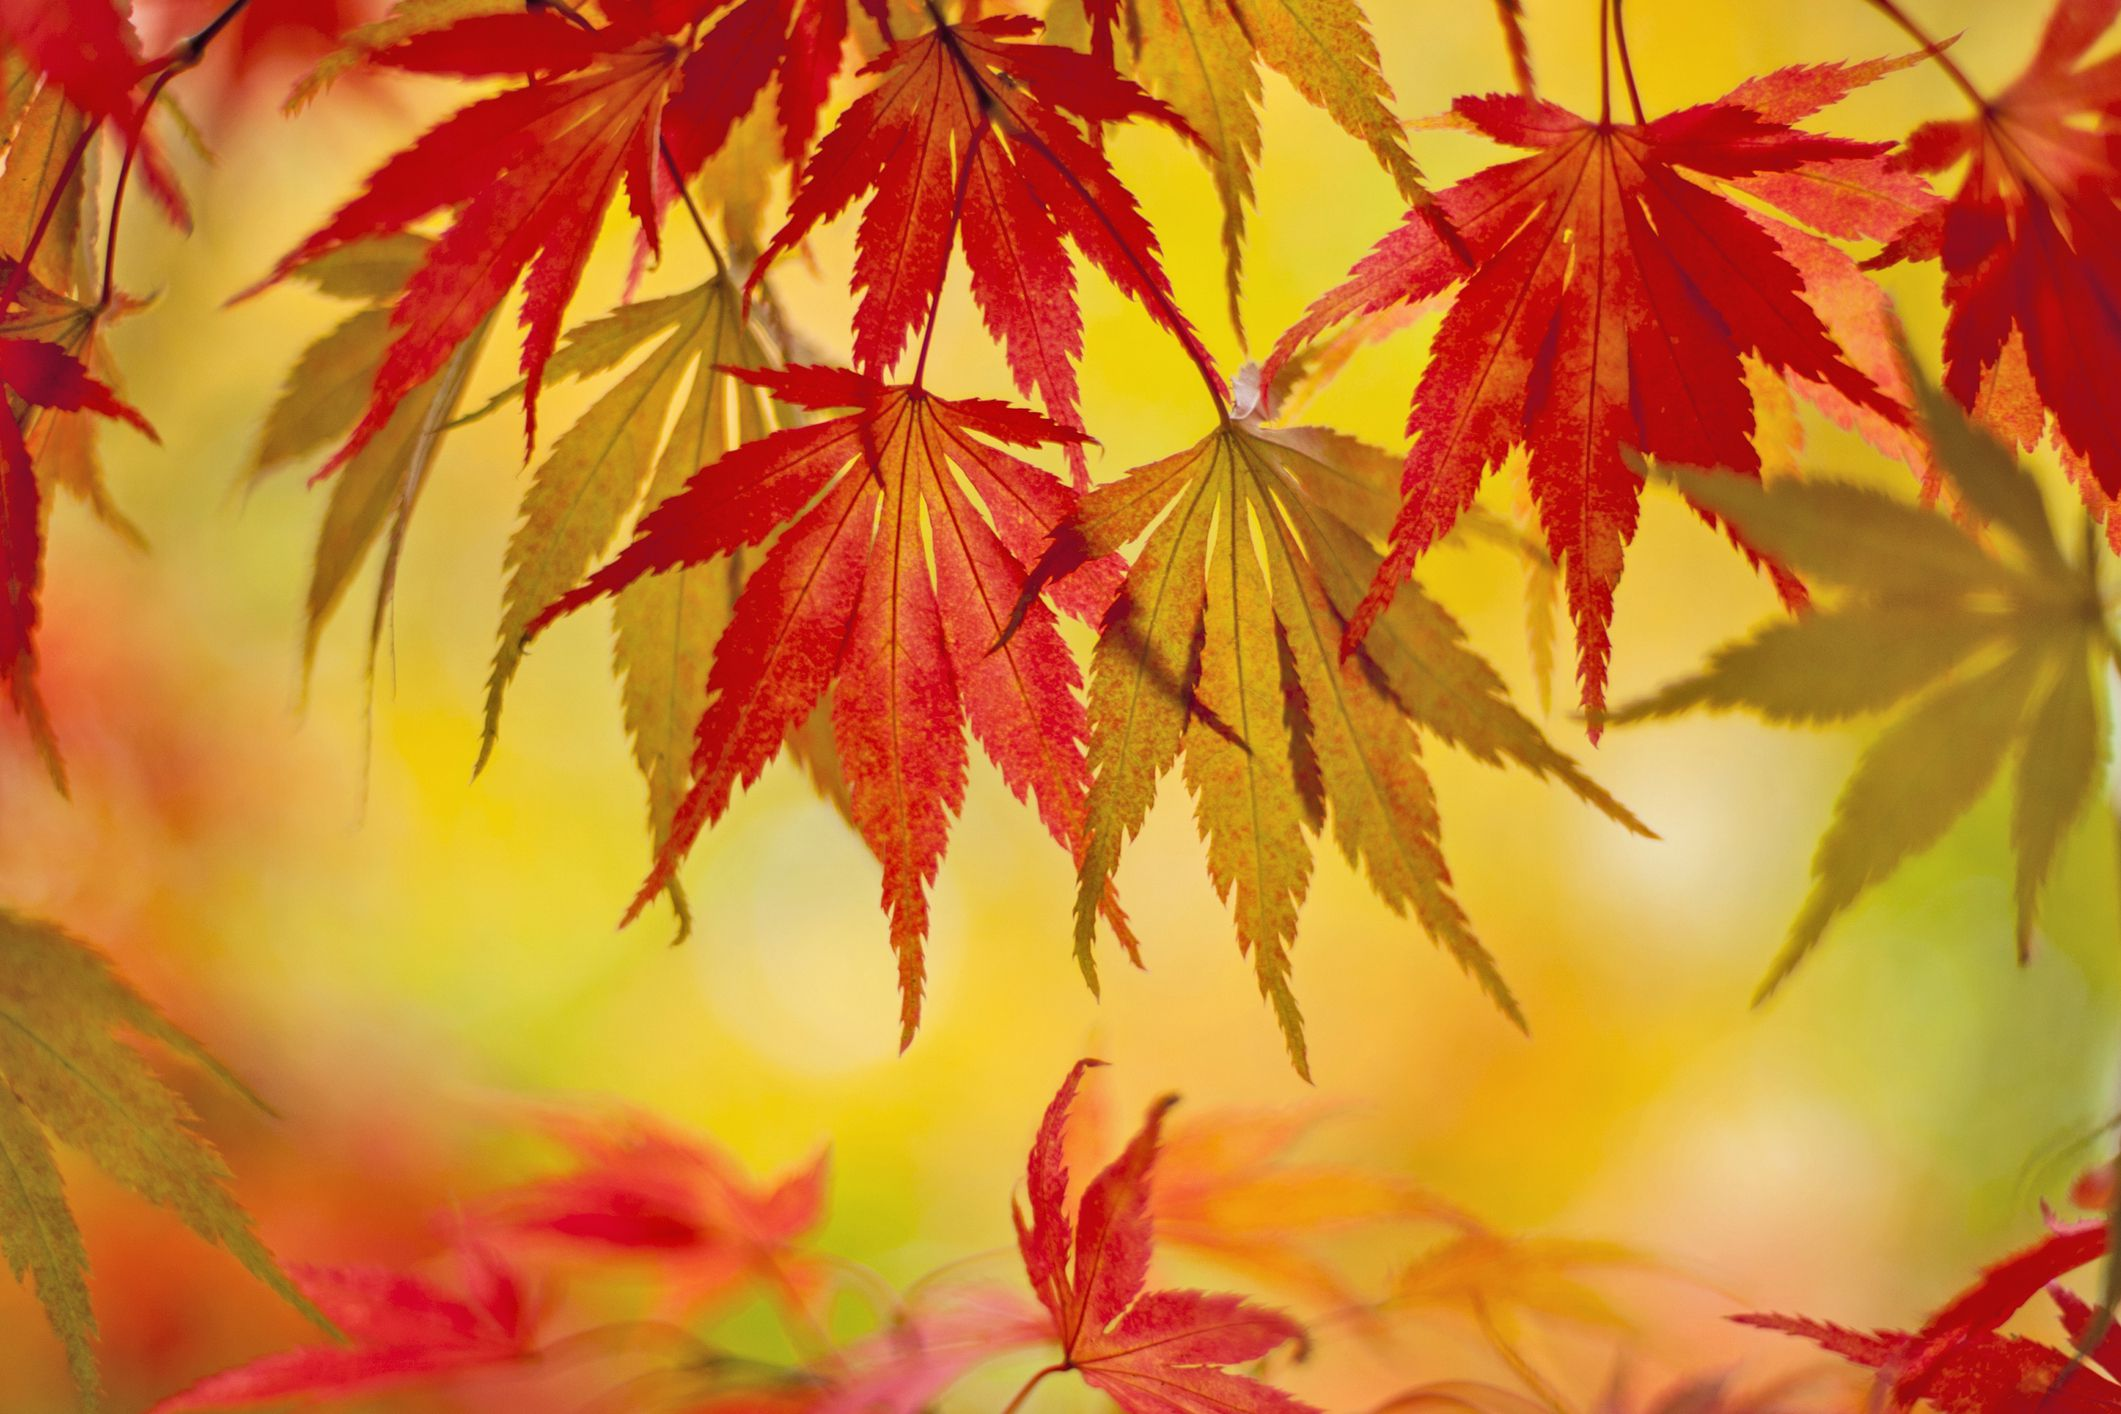 How To Protect Japanese Maple Trees From Winter Damage